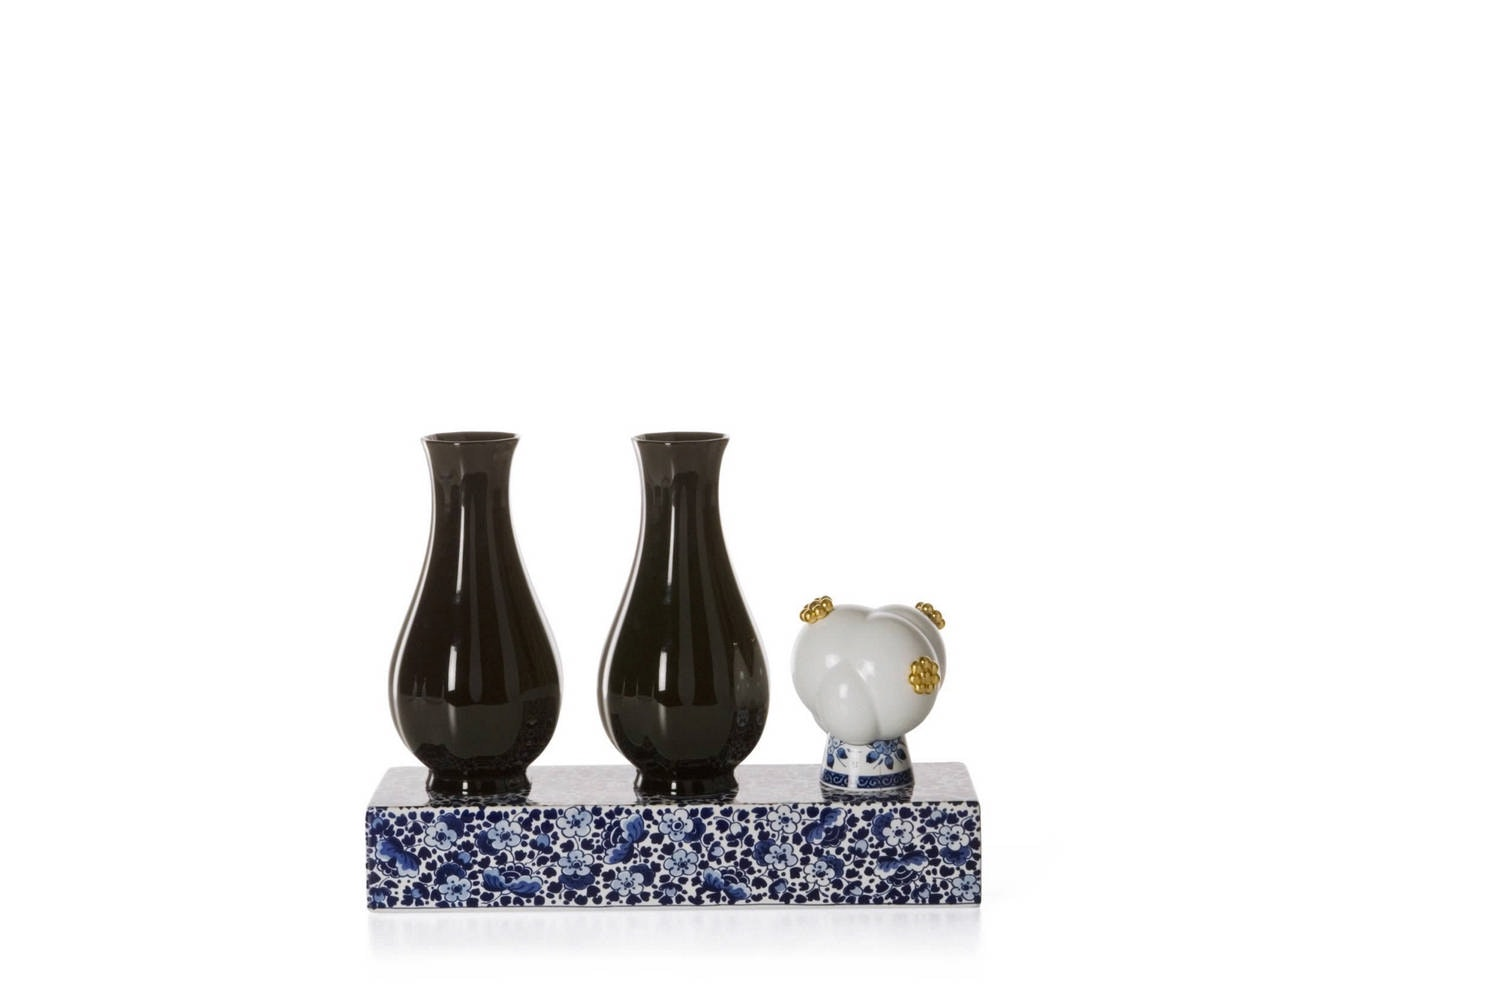 Delft Blue No. 10 Vase by Marcel Wanders for Moooi